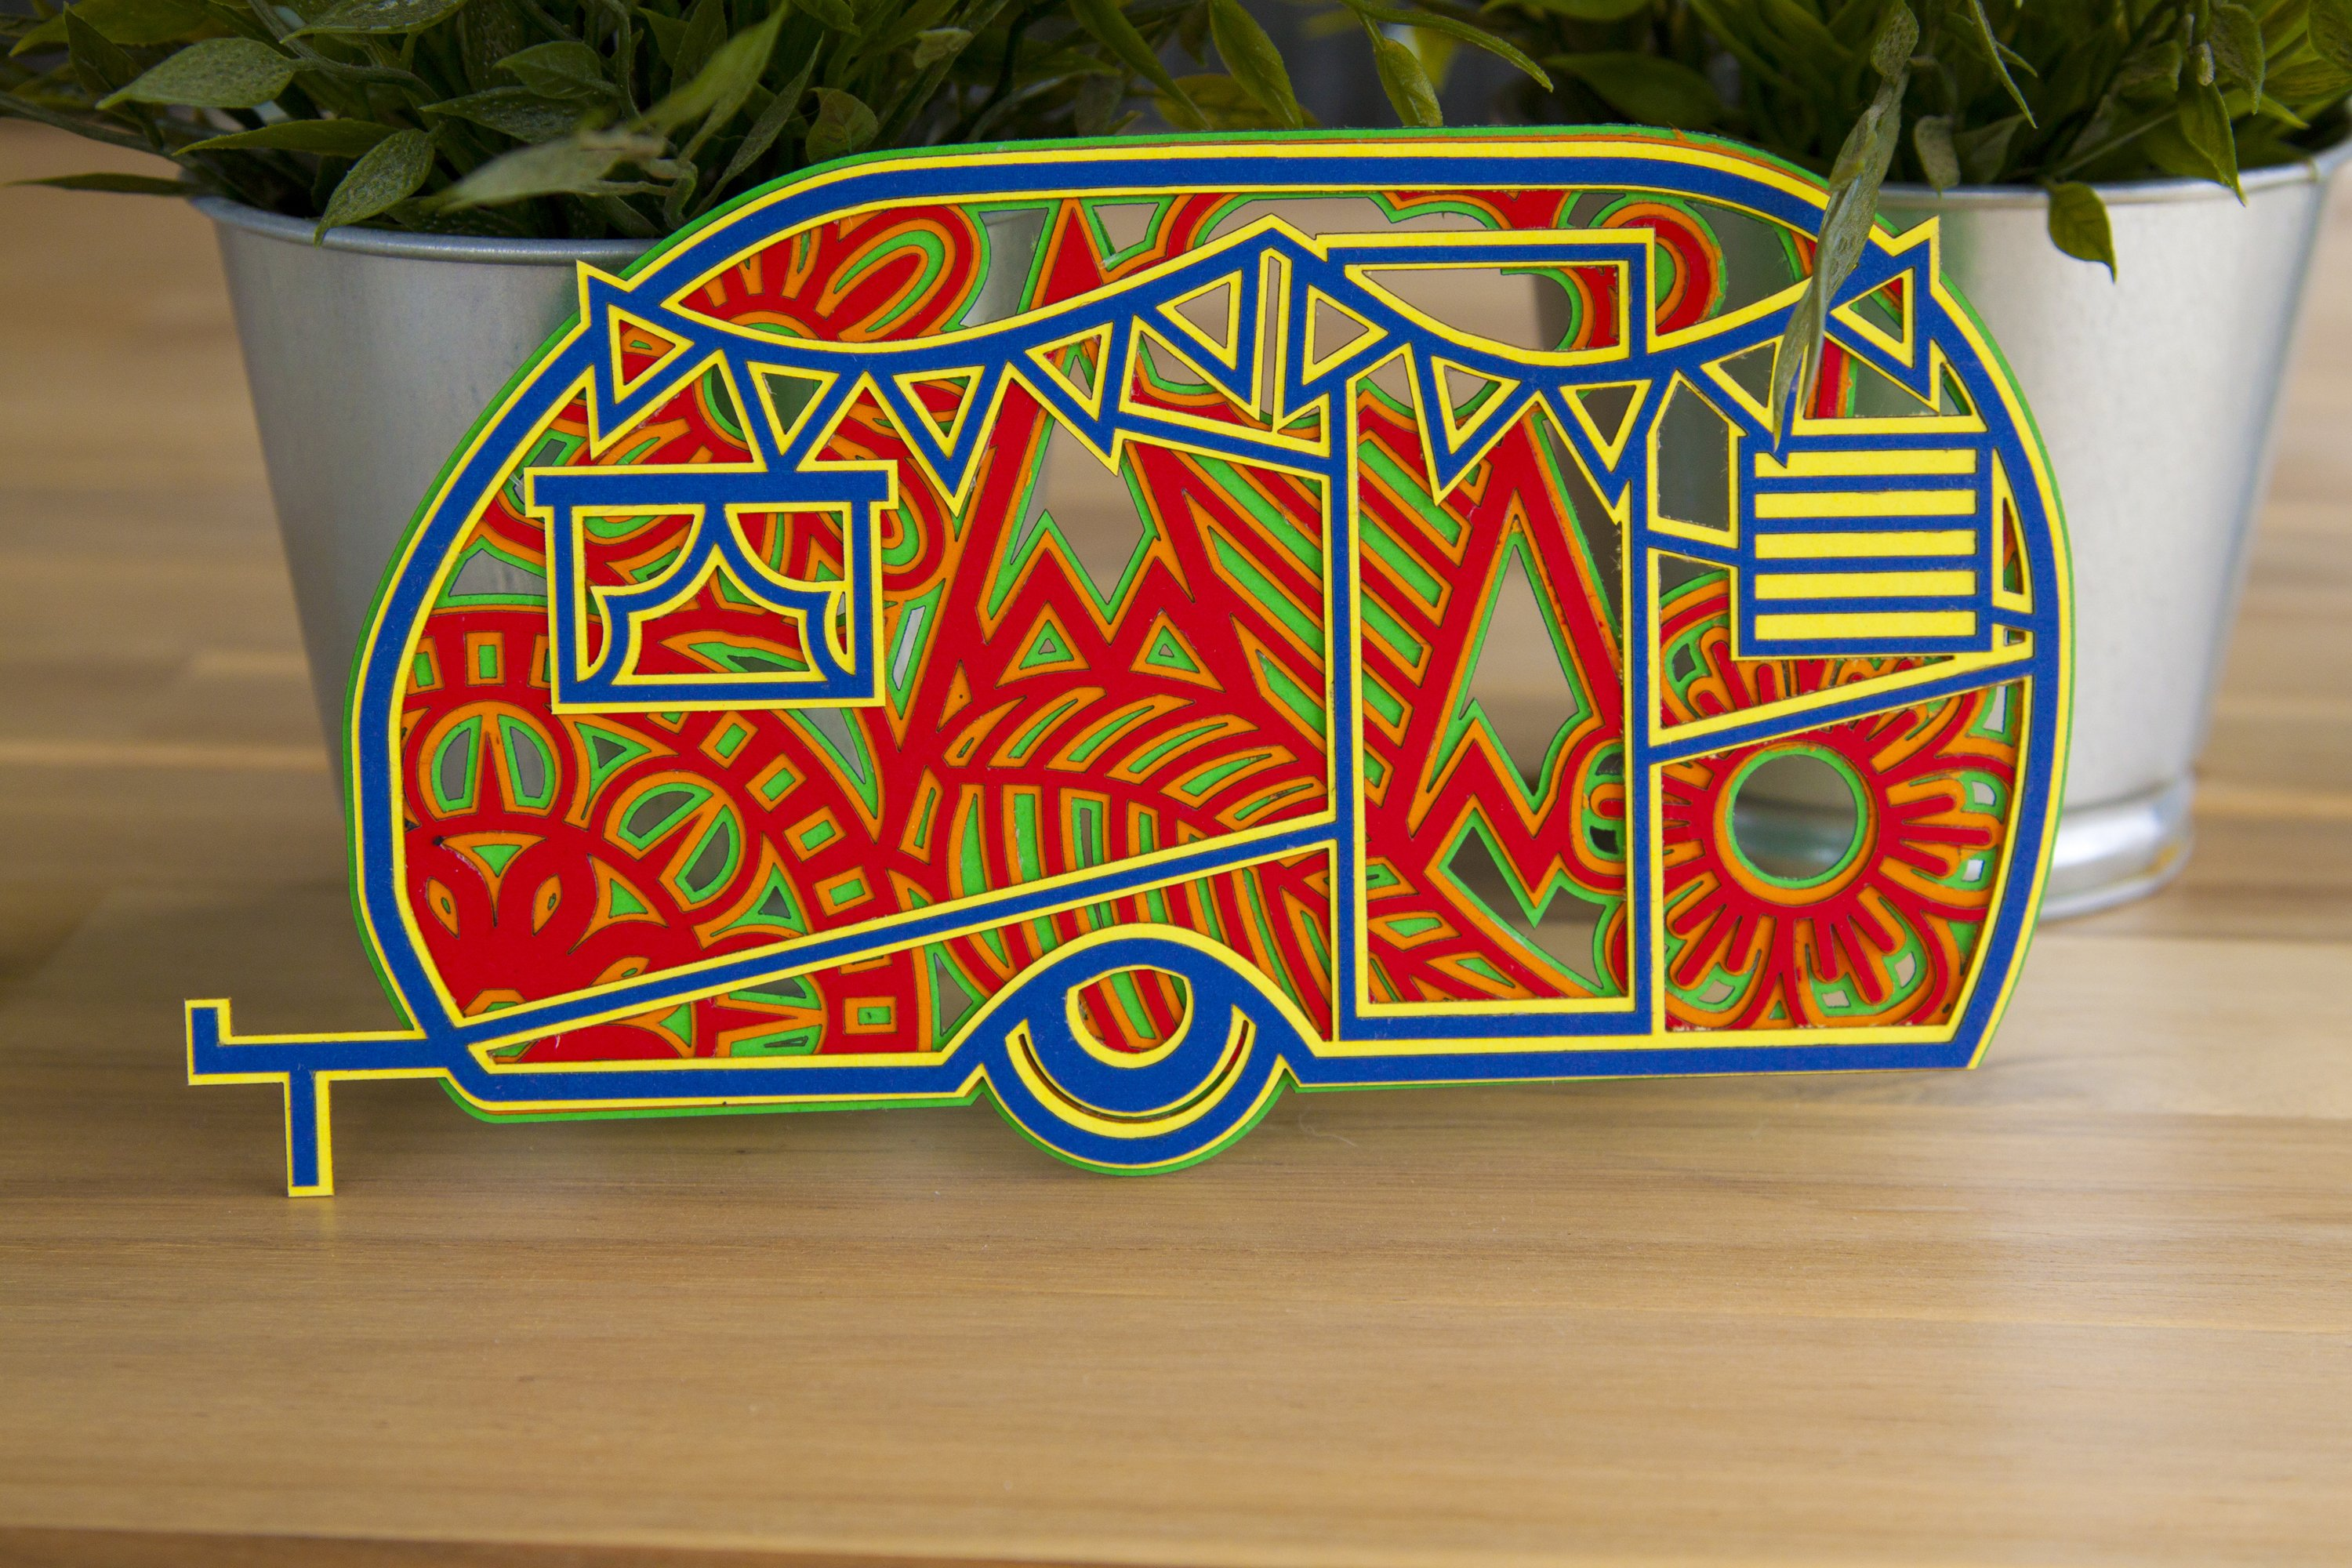 Download 3D Layered Camper Mandala cut file for crafters 5 layers ...